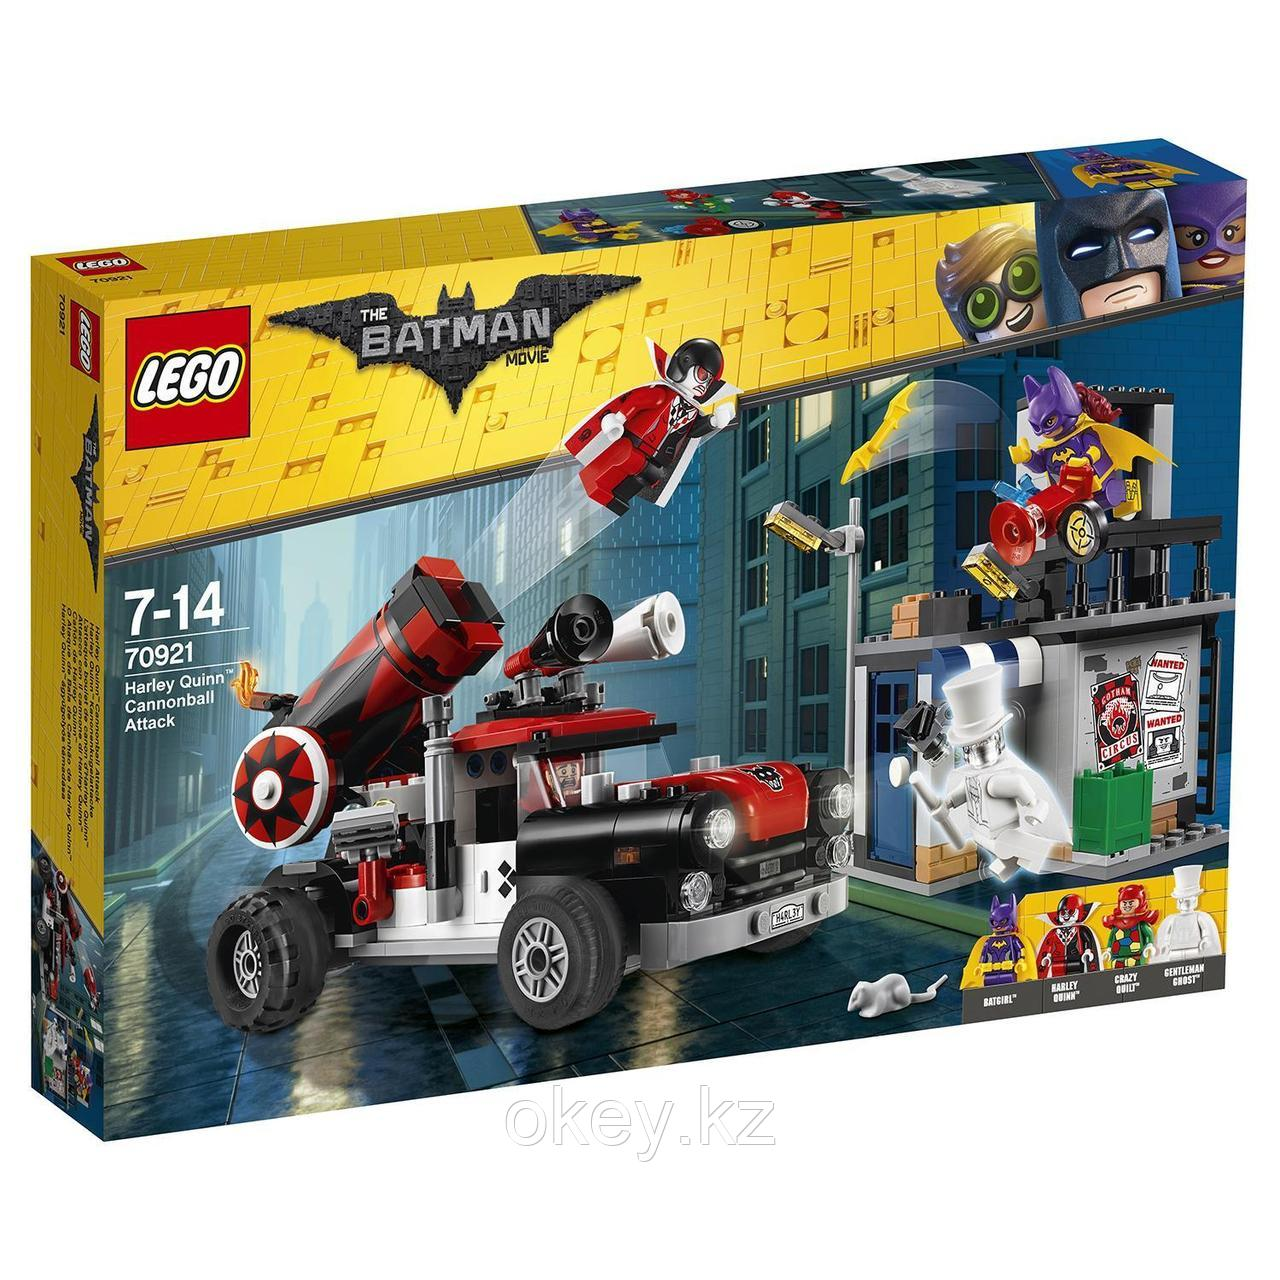 LEGO Batman Movie: Тяжёлая артиллерия Харли Квинн 70921